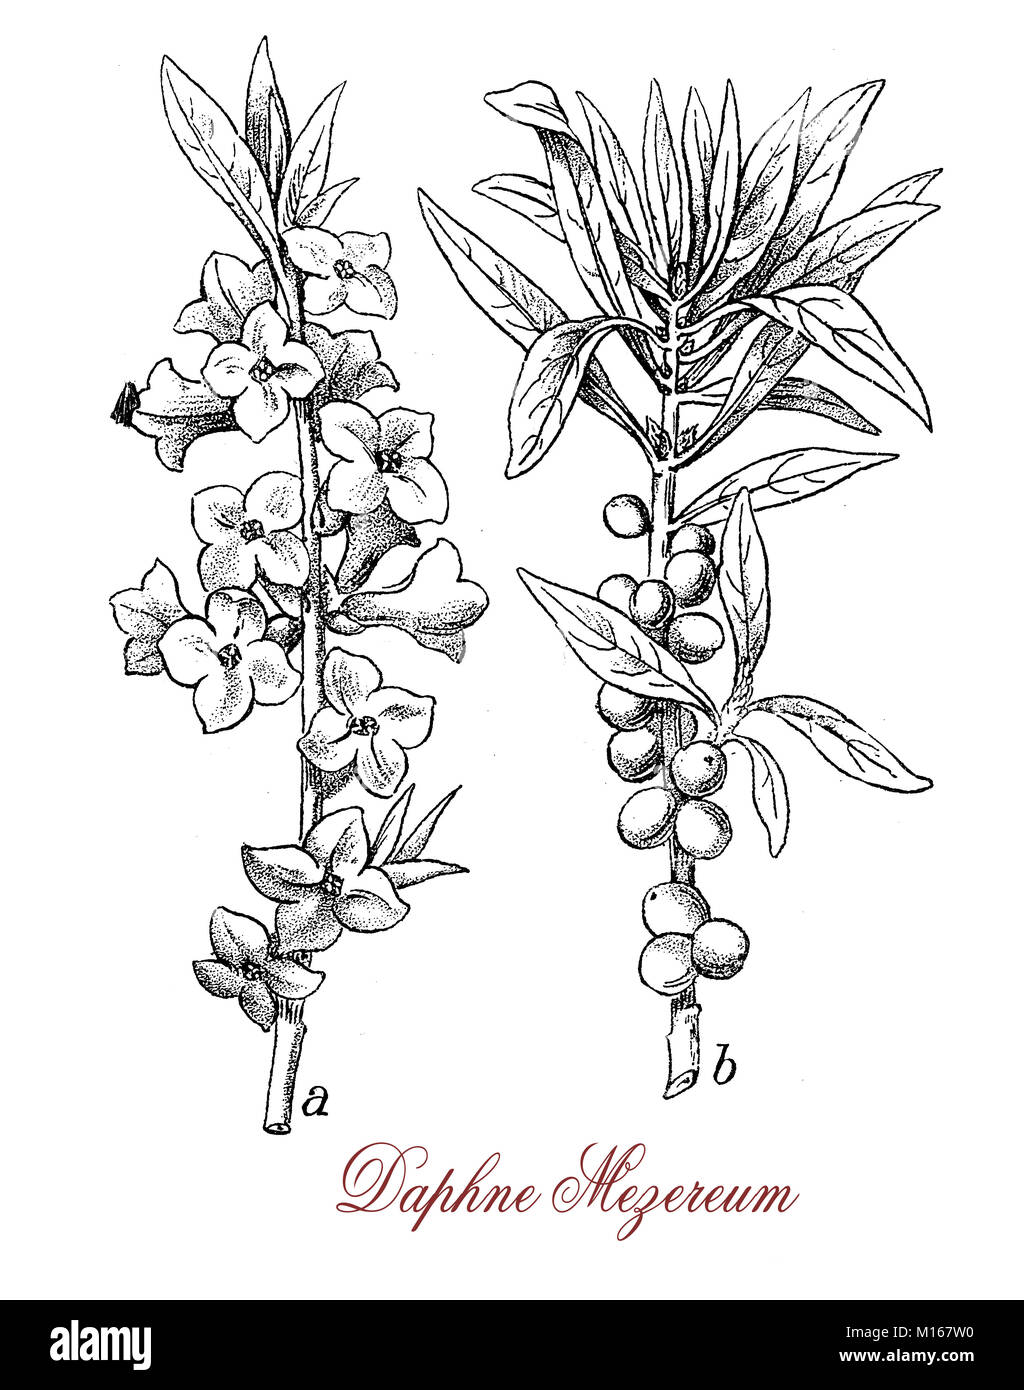 Vintage engraving of Daphne mezereum or February daphne, ornamental shrub cultivated in garden with scented flowers - Stock Image